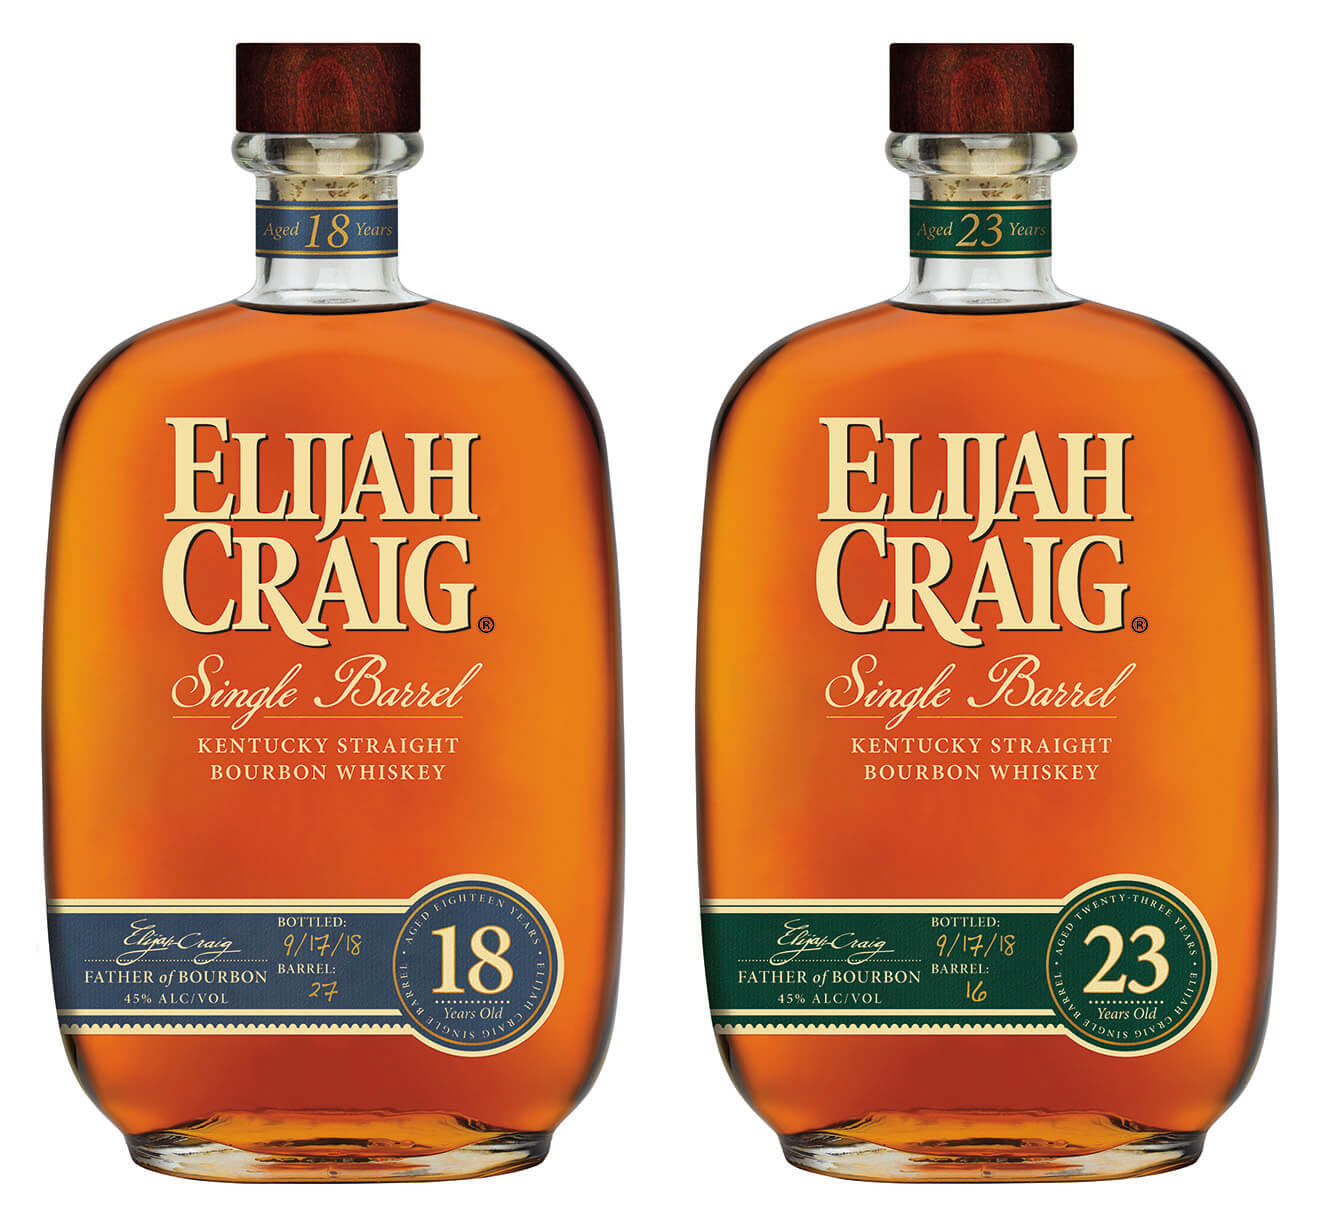 Elijah Craig 18-Year-Old and 23-Year-Old, bottles on white